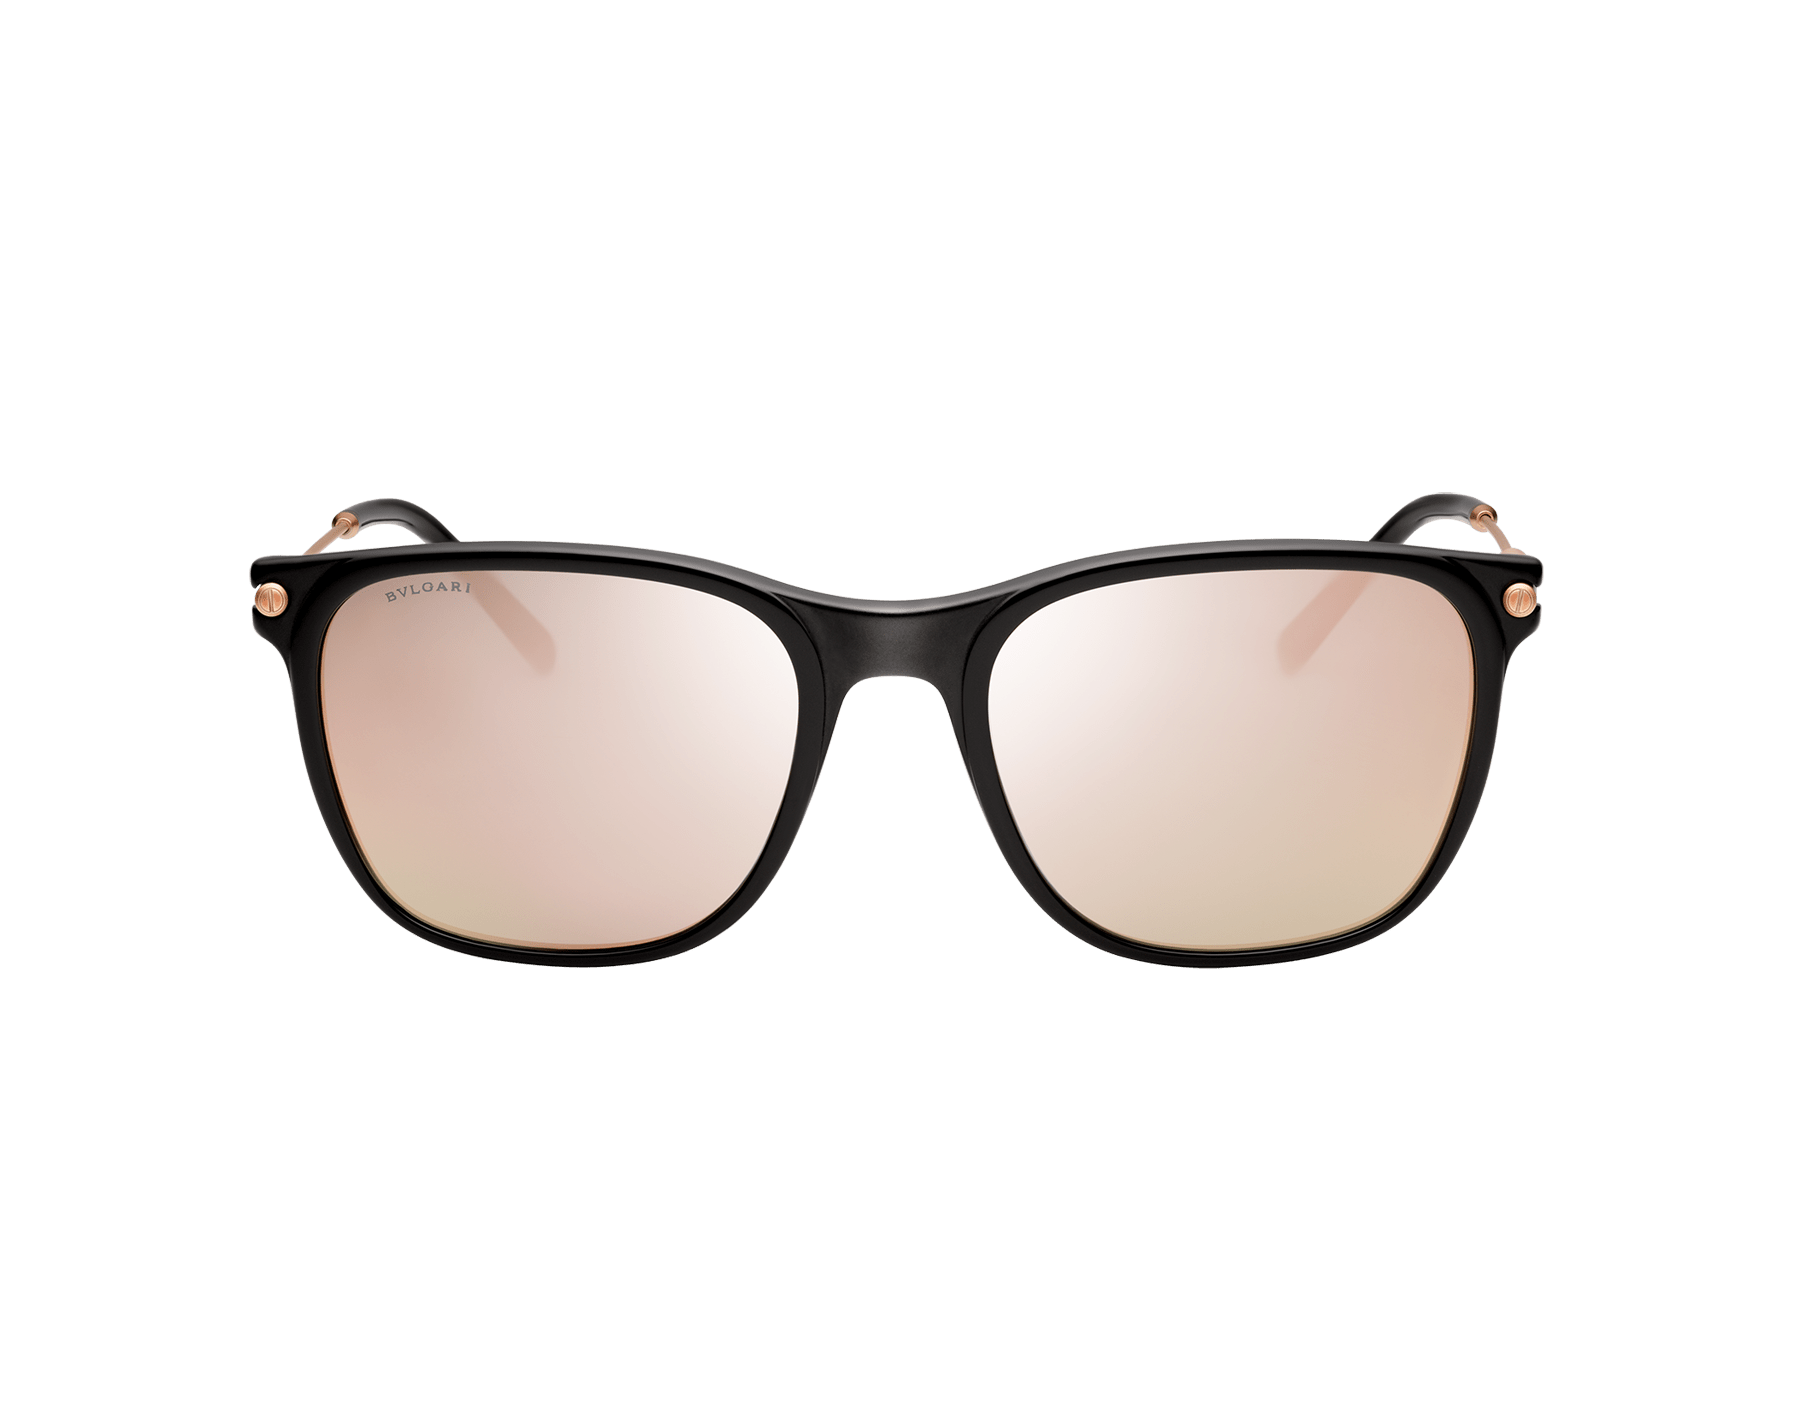 Diagono rectangular acetate sunglasses. 903601 image 2